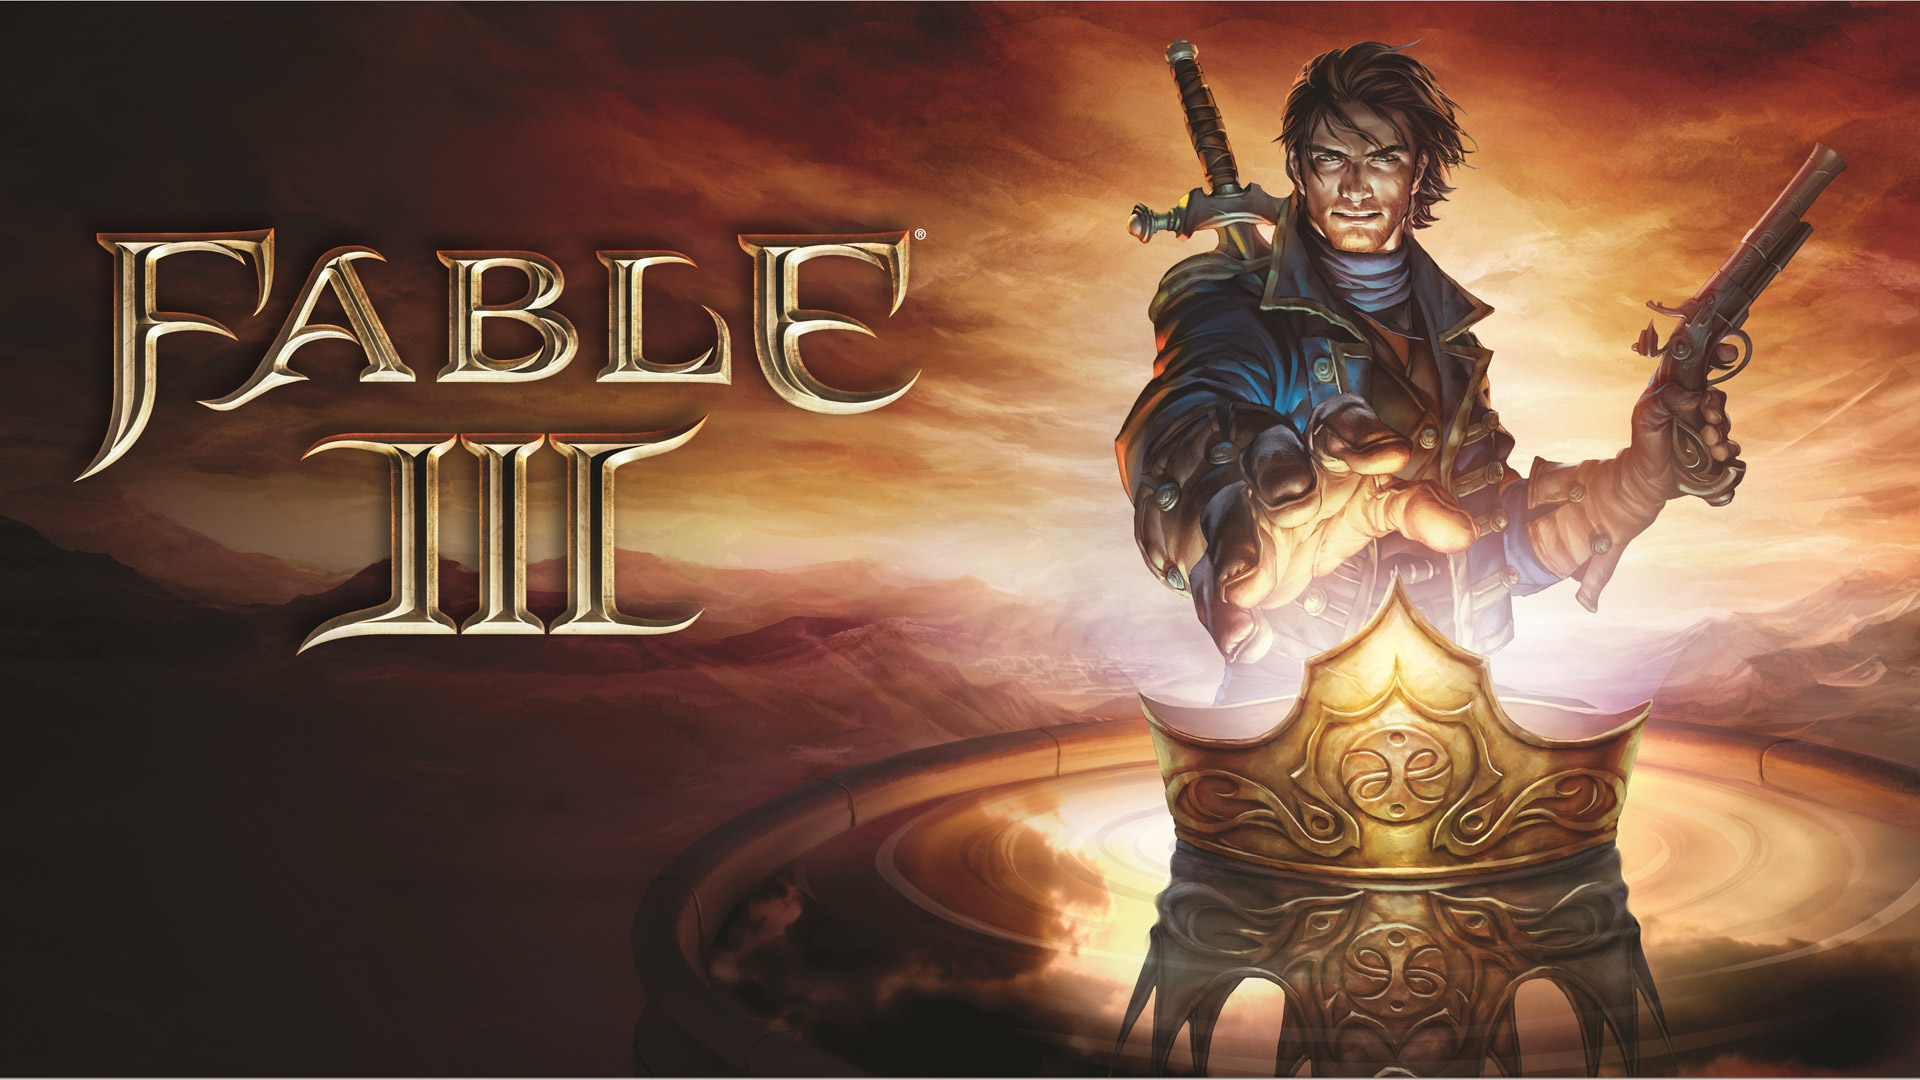 Fable III Wallpaper in 1920x1080